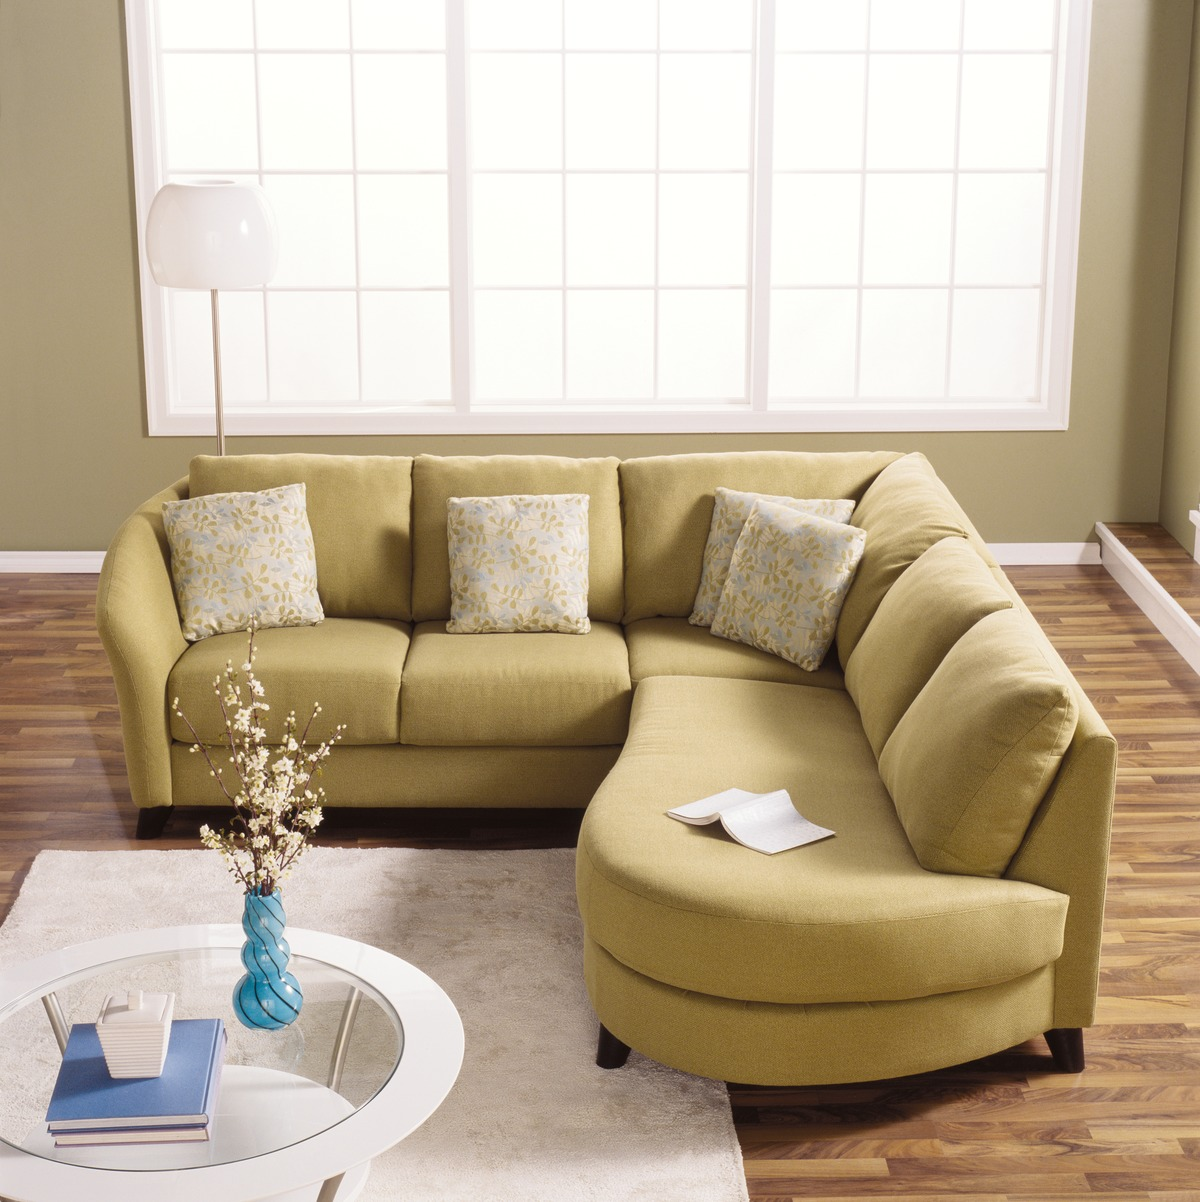 Alula Leather Sectional SofasLoveseats Amp Chairs West